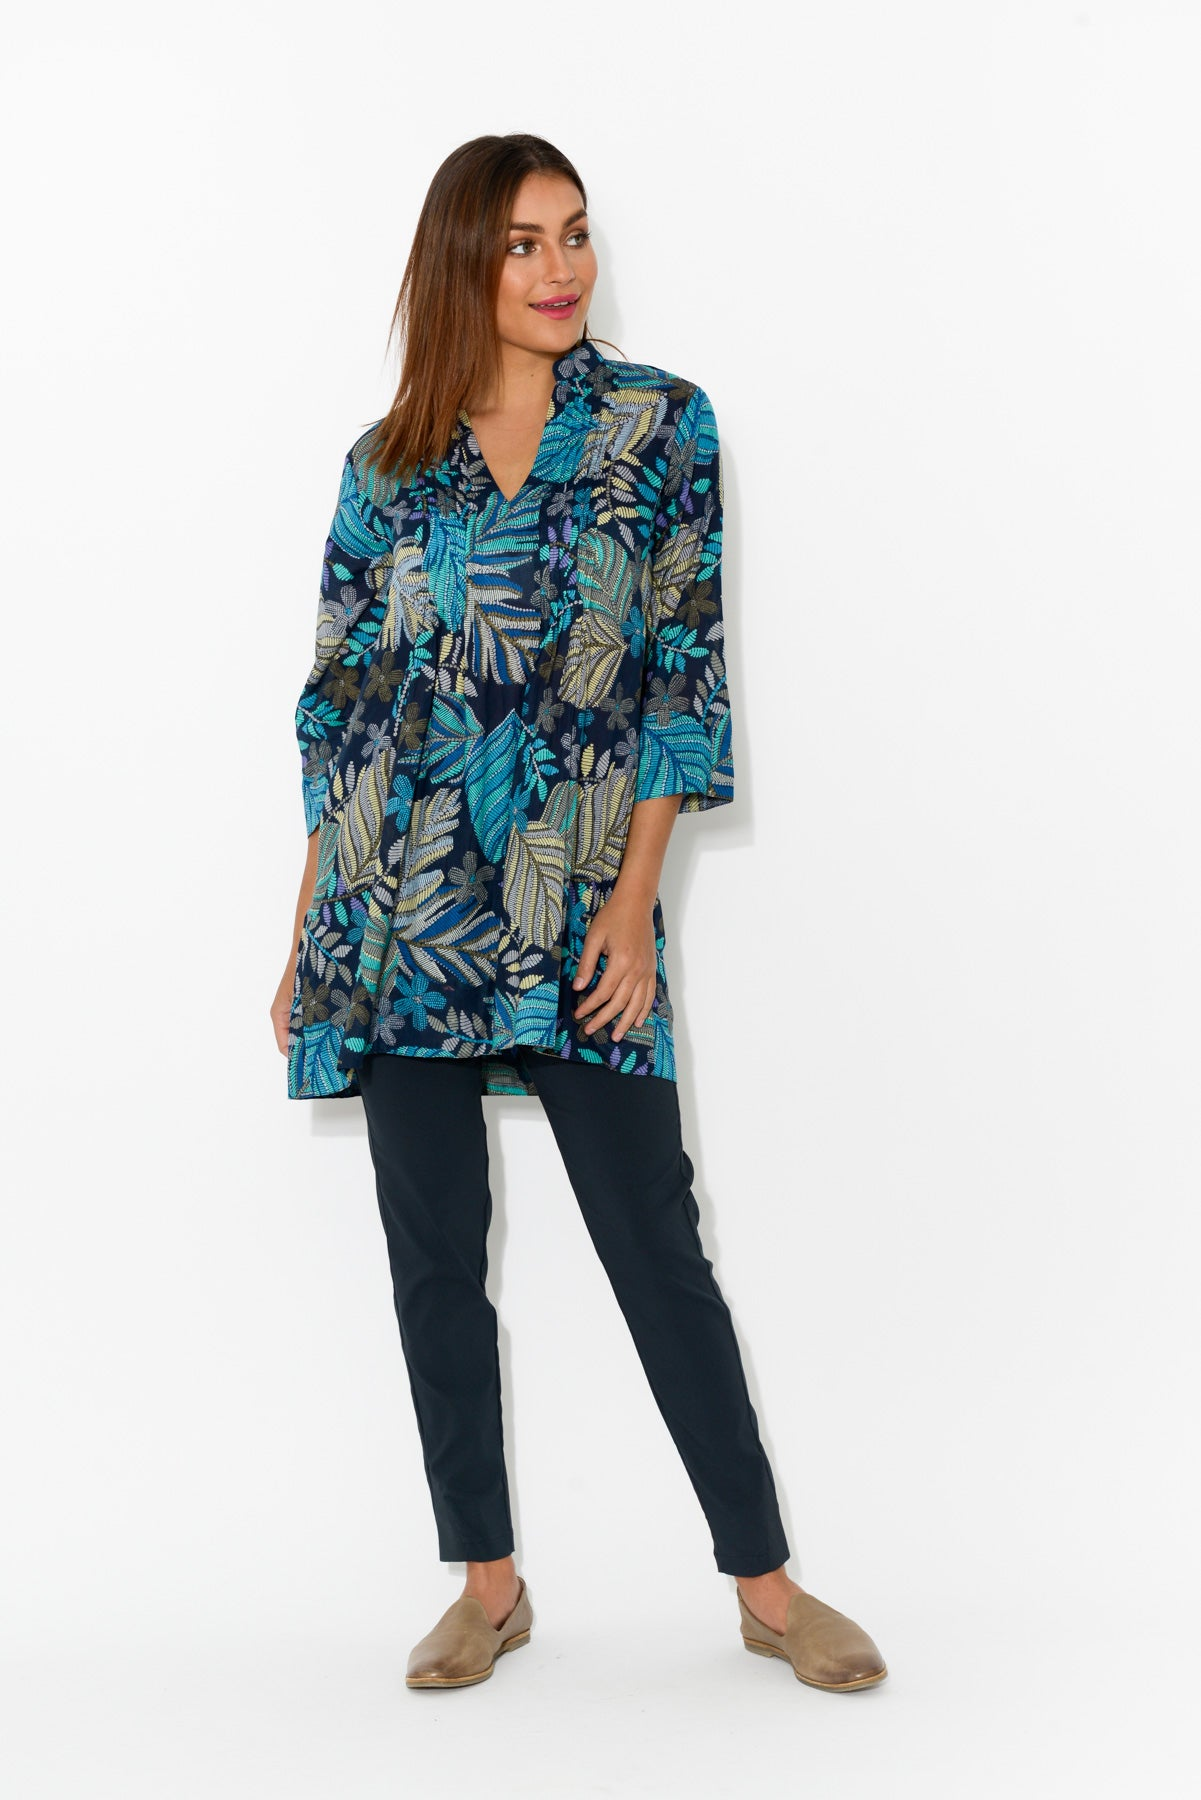 Tully Blue Fern Cotton Tunic - Blue Bungalow